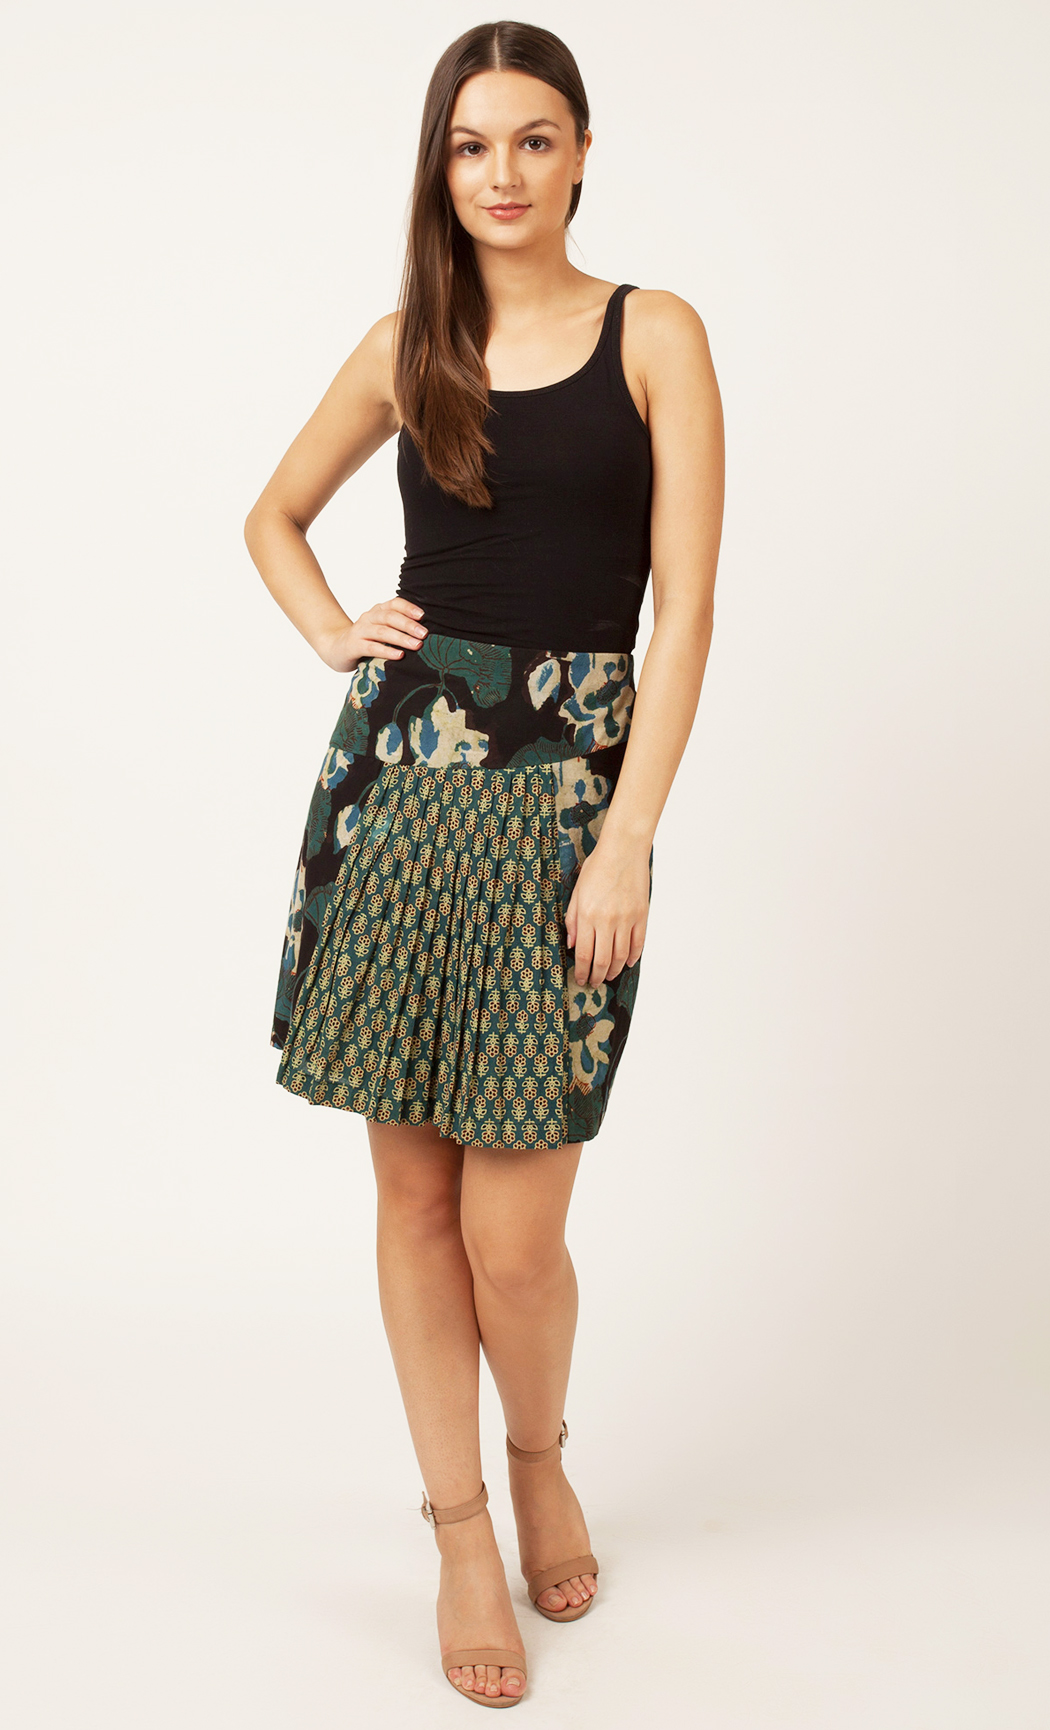 Green Floral Printed Skirt. Buy Online